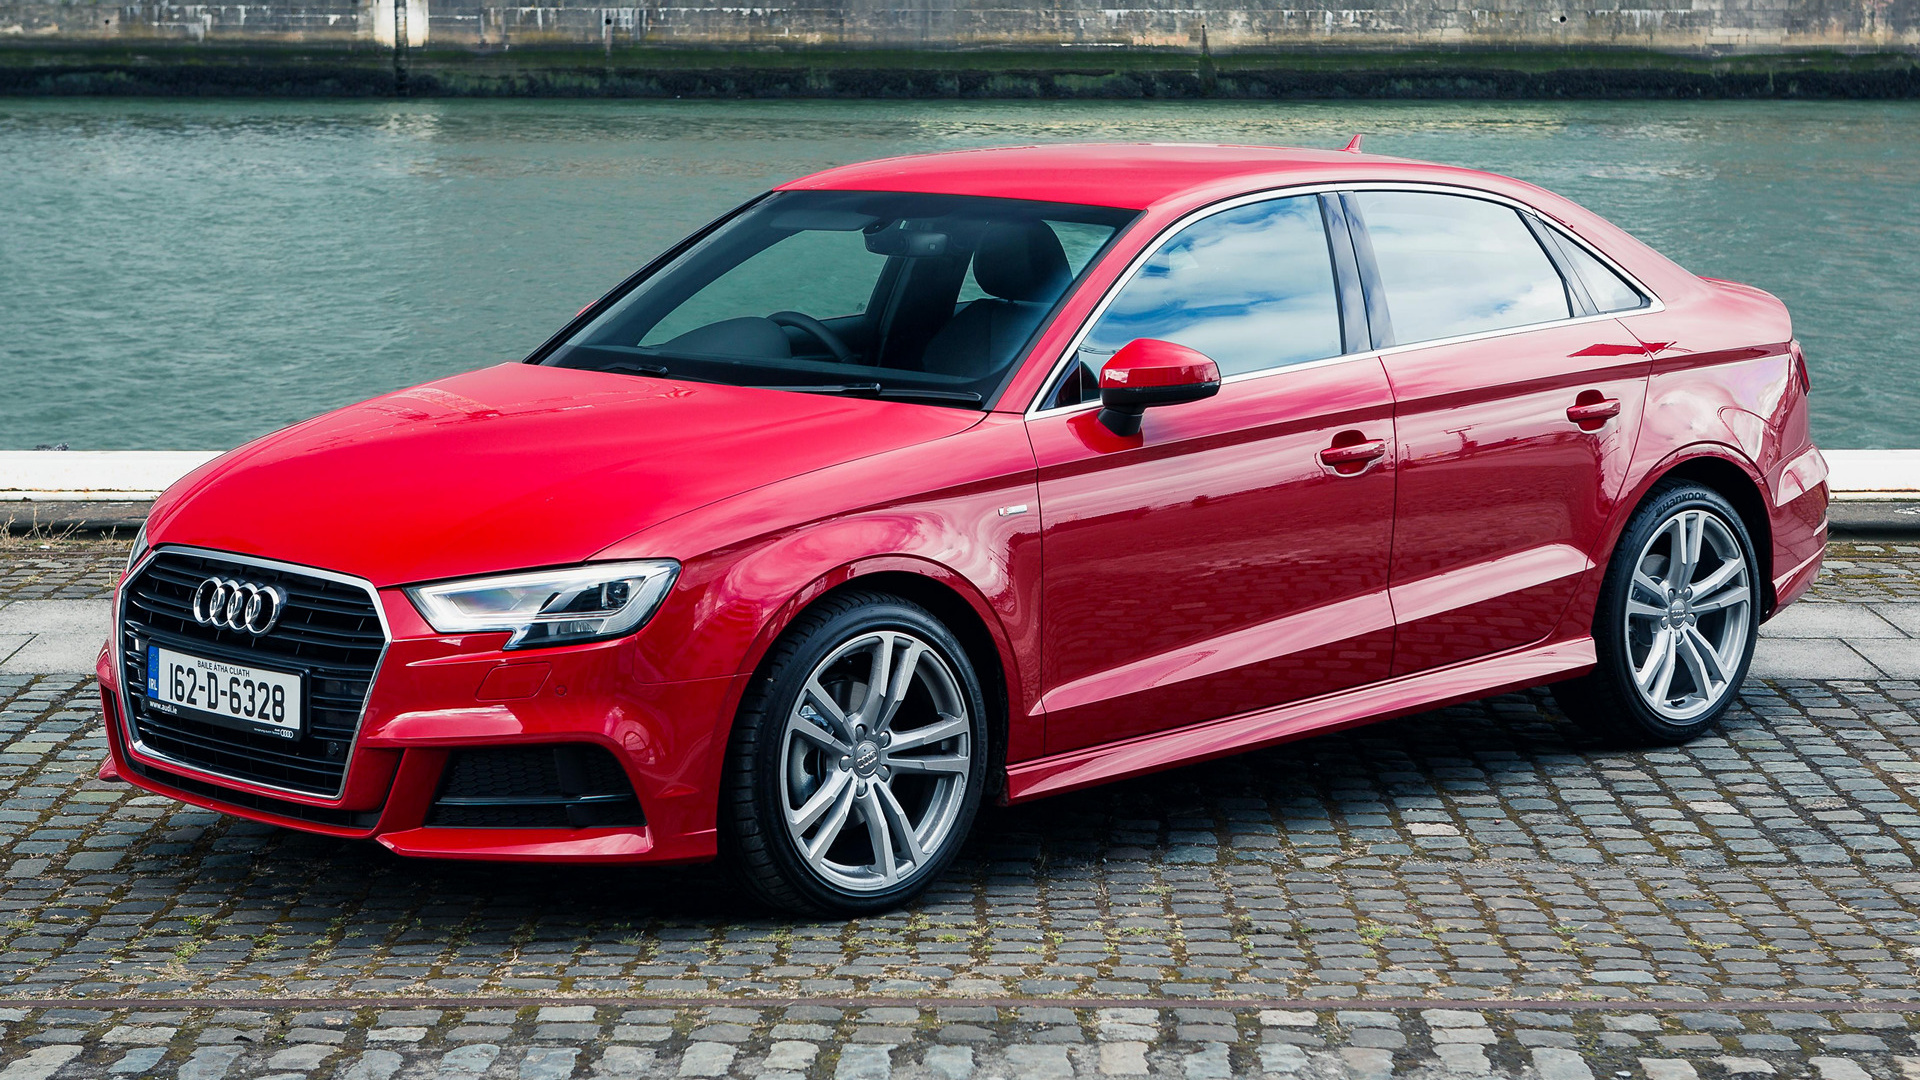 audi a3 saloon s line 2016 uk wallpapers and hd images. Black Bedroom Furniture Sets. Home Design Ideas